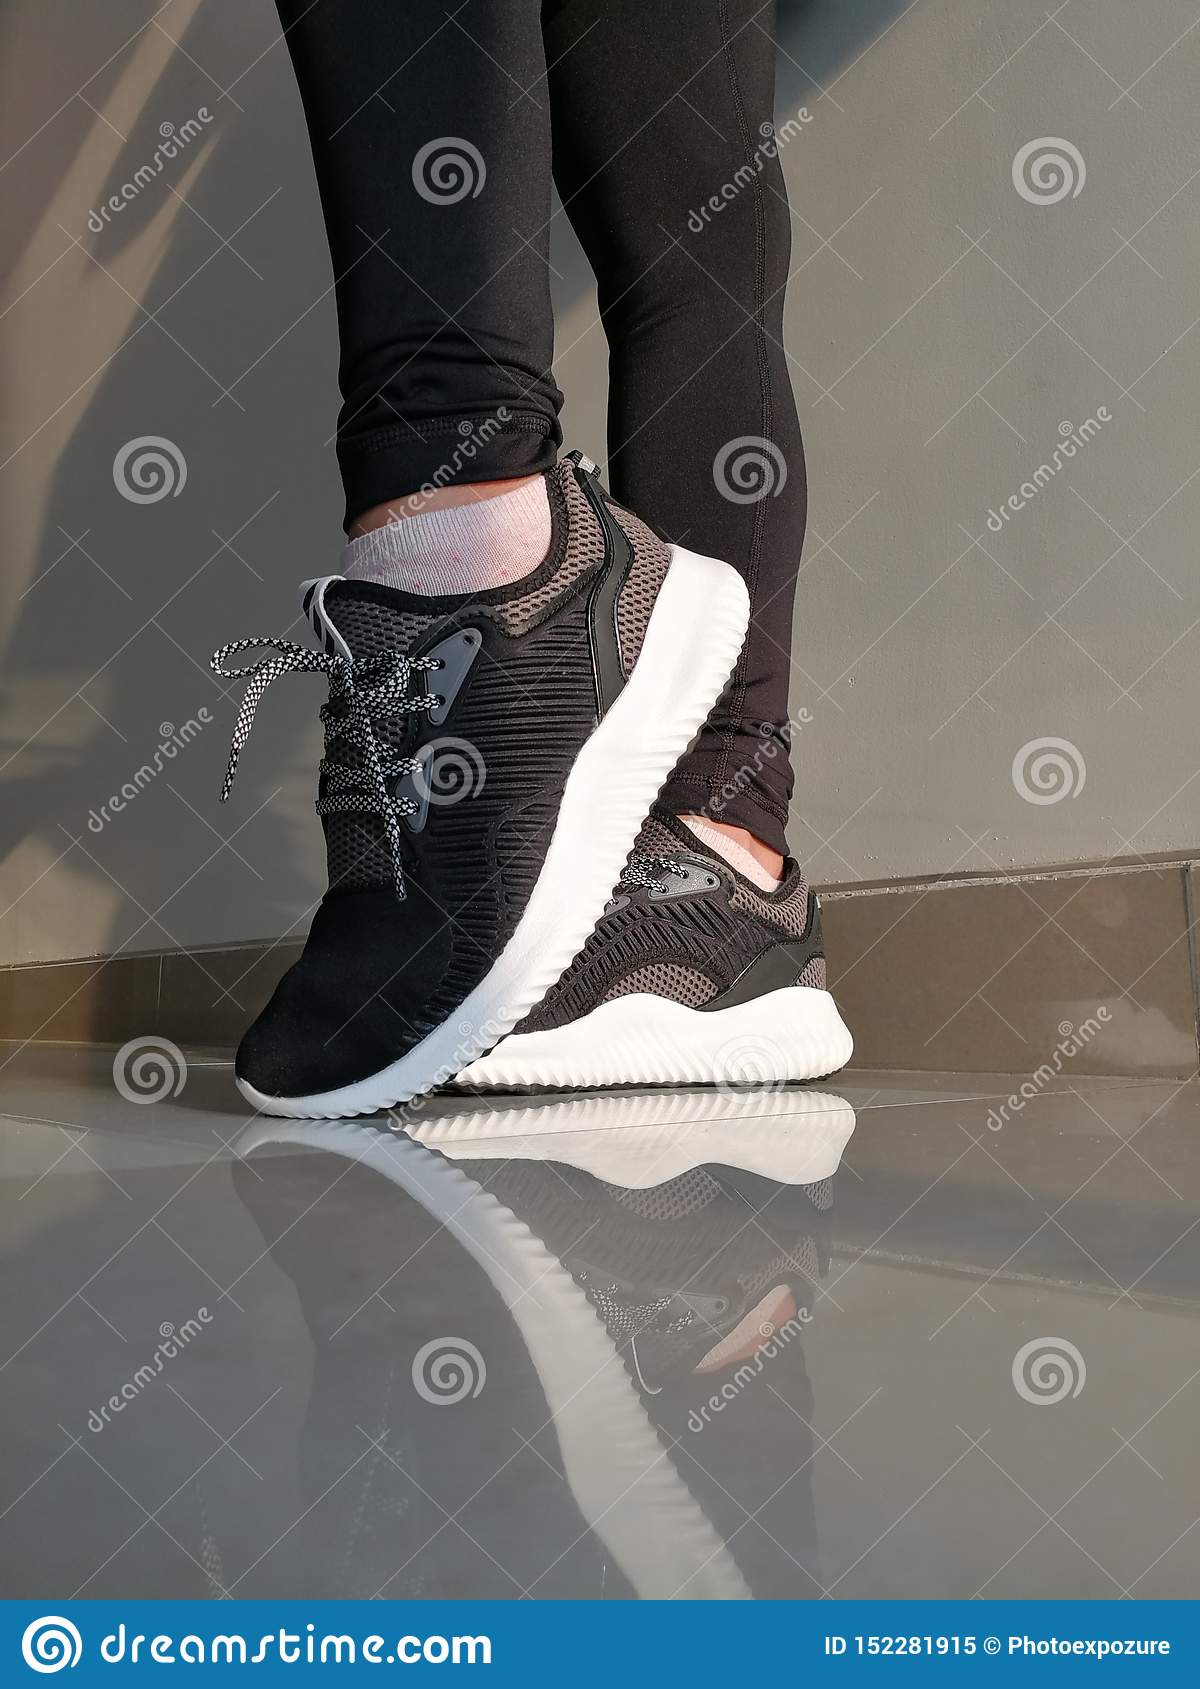 Adidas Woman& x27; s Trainers